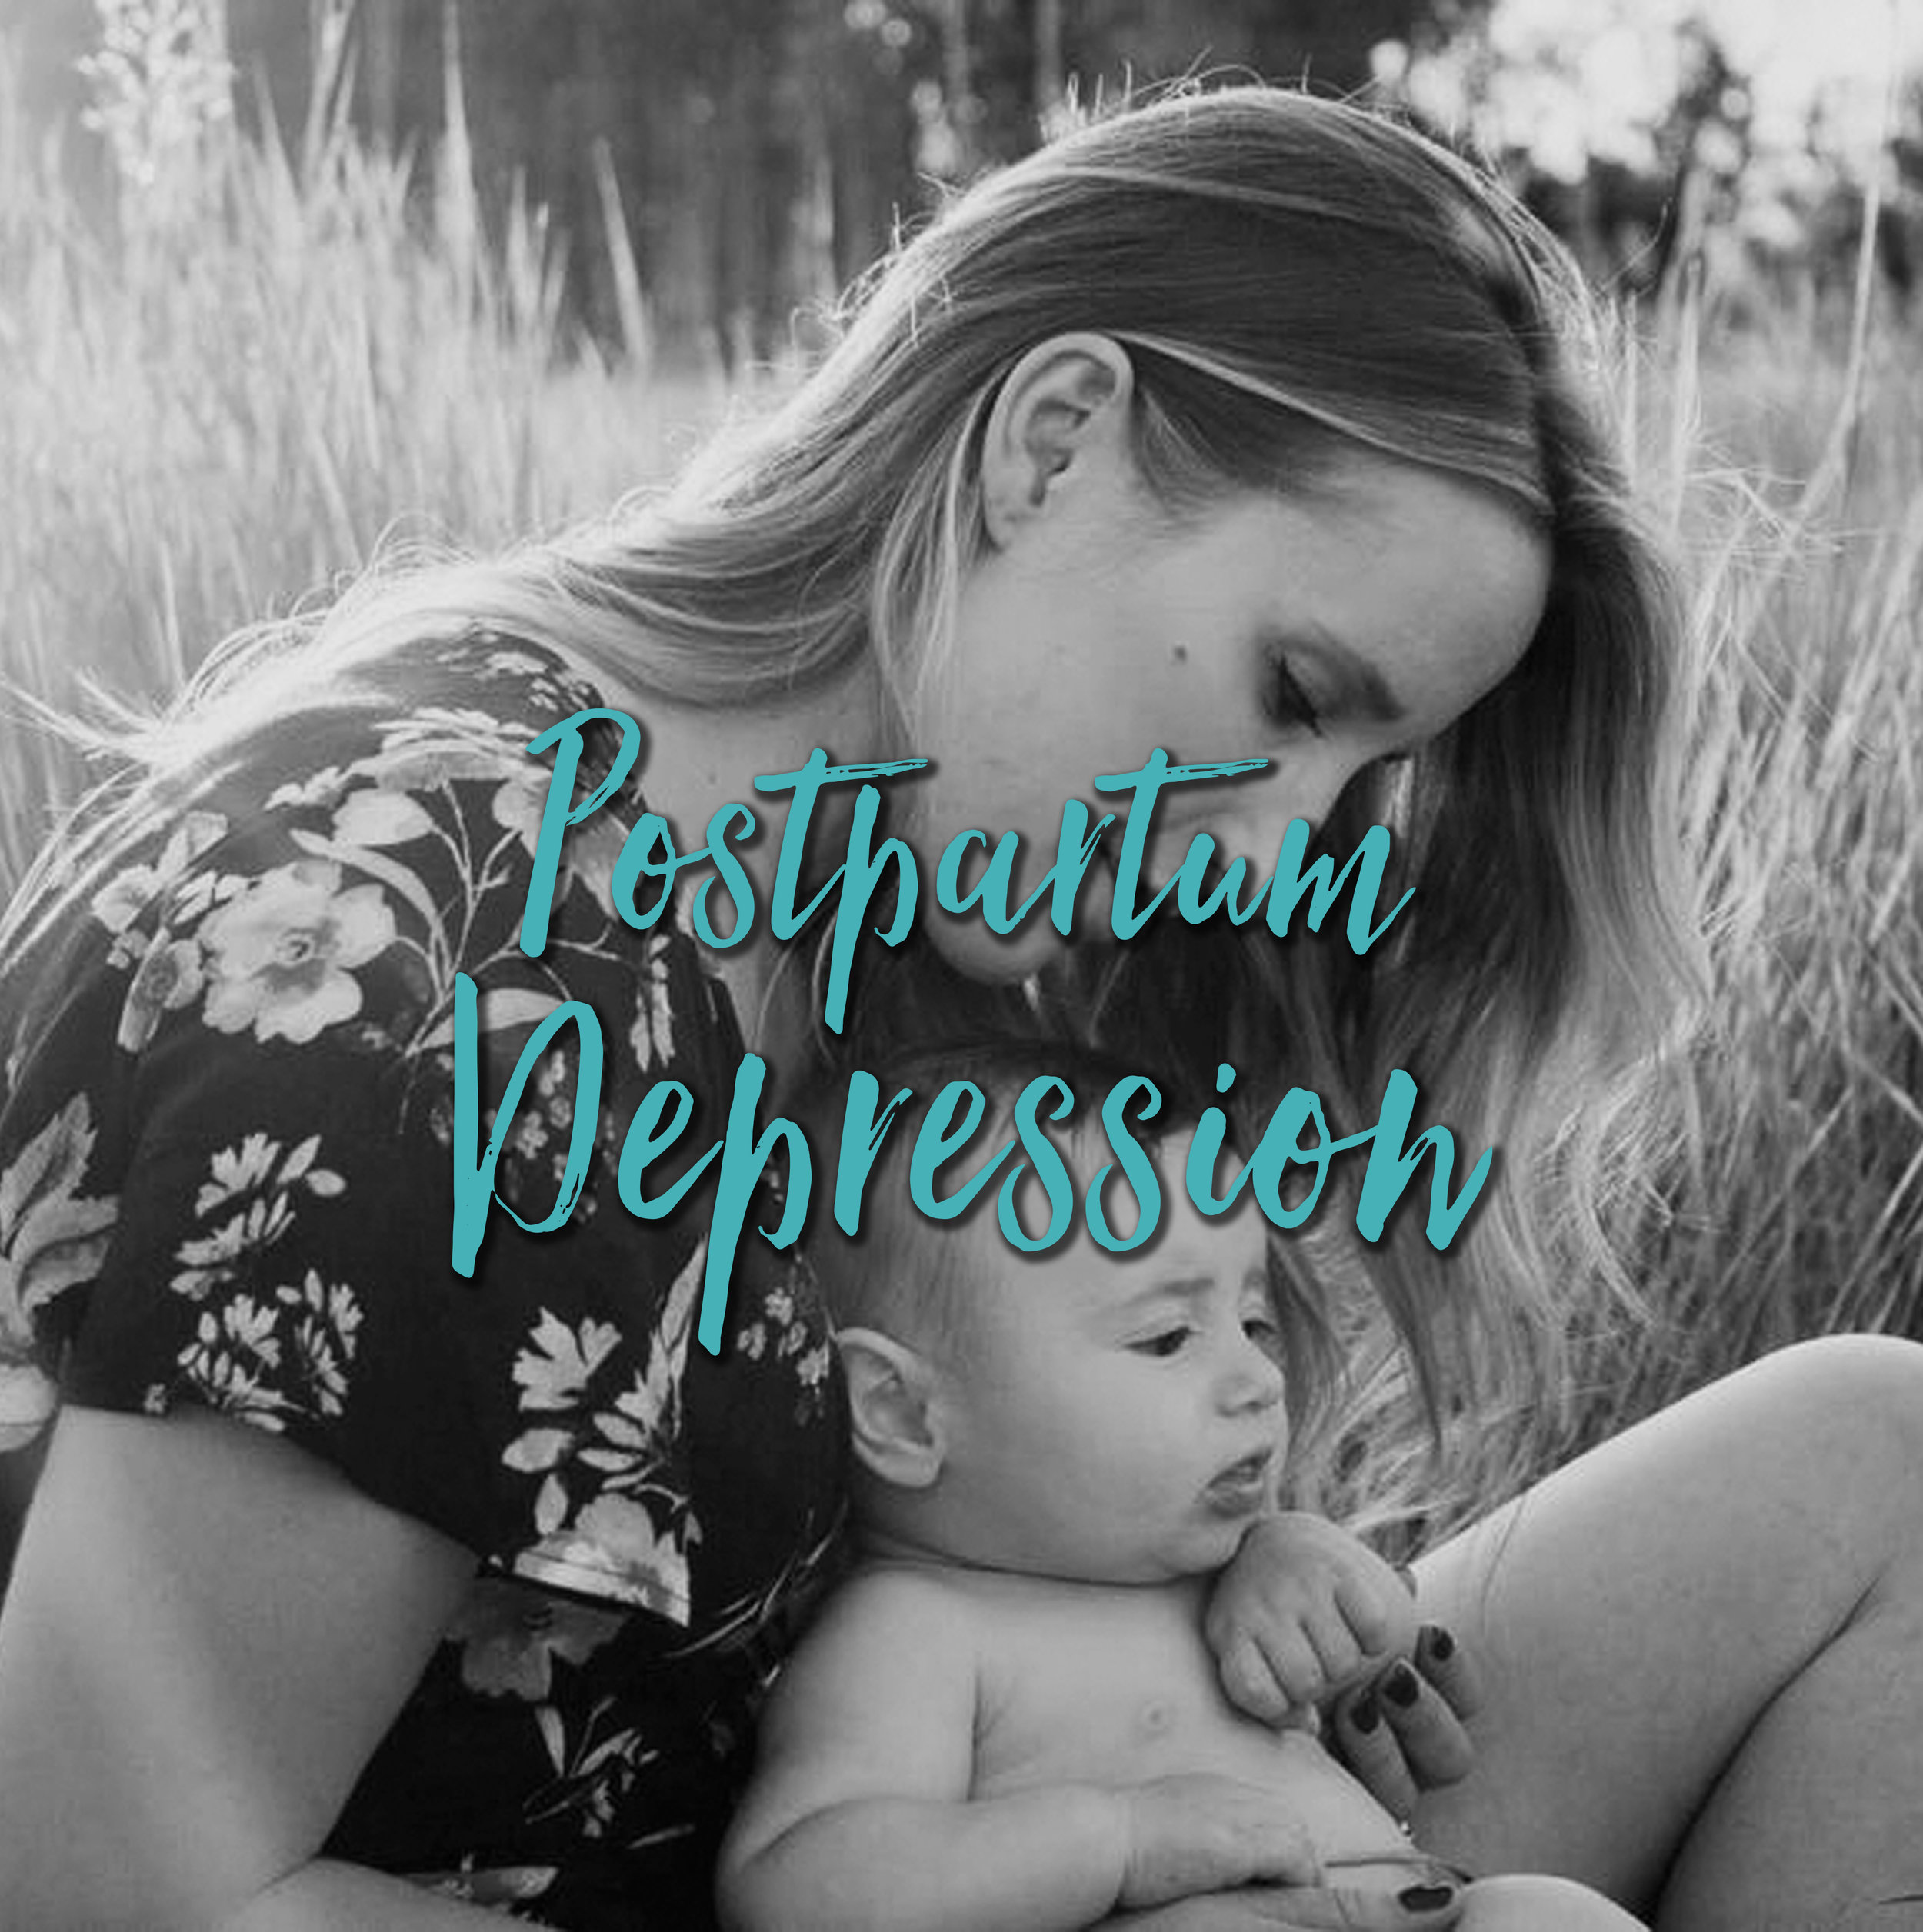 postpartum-depression-transition-wellness-health.jpg